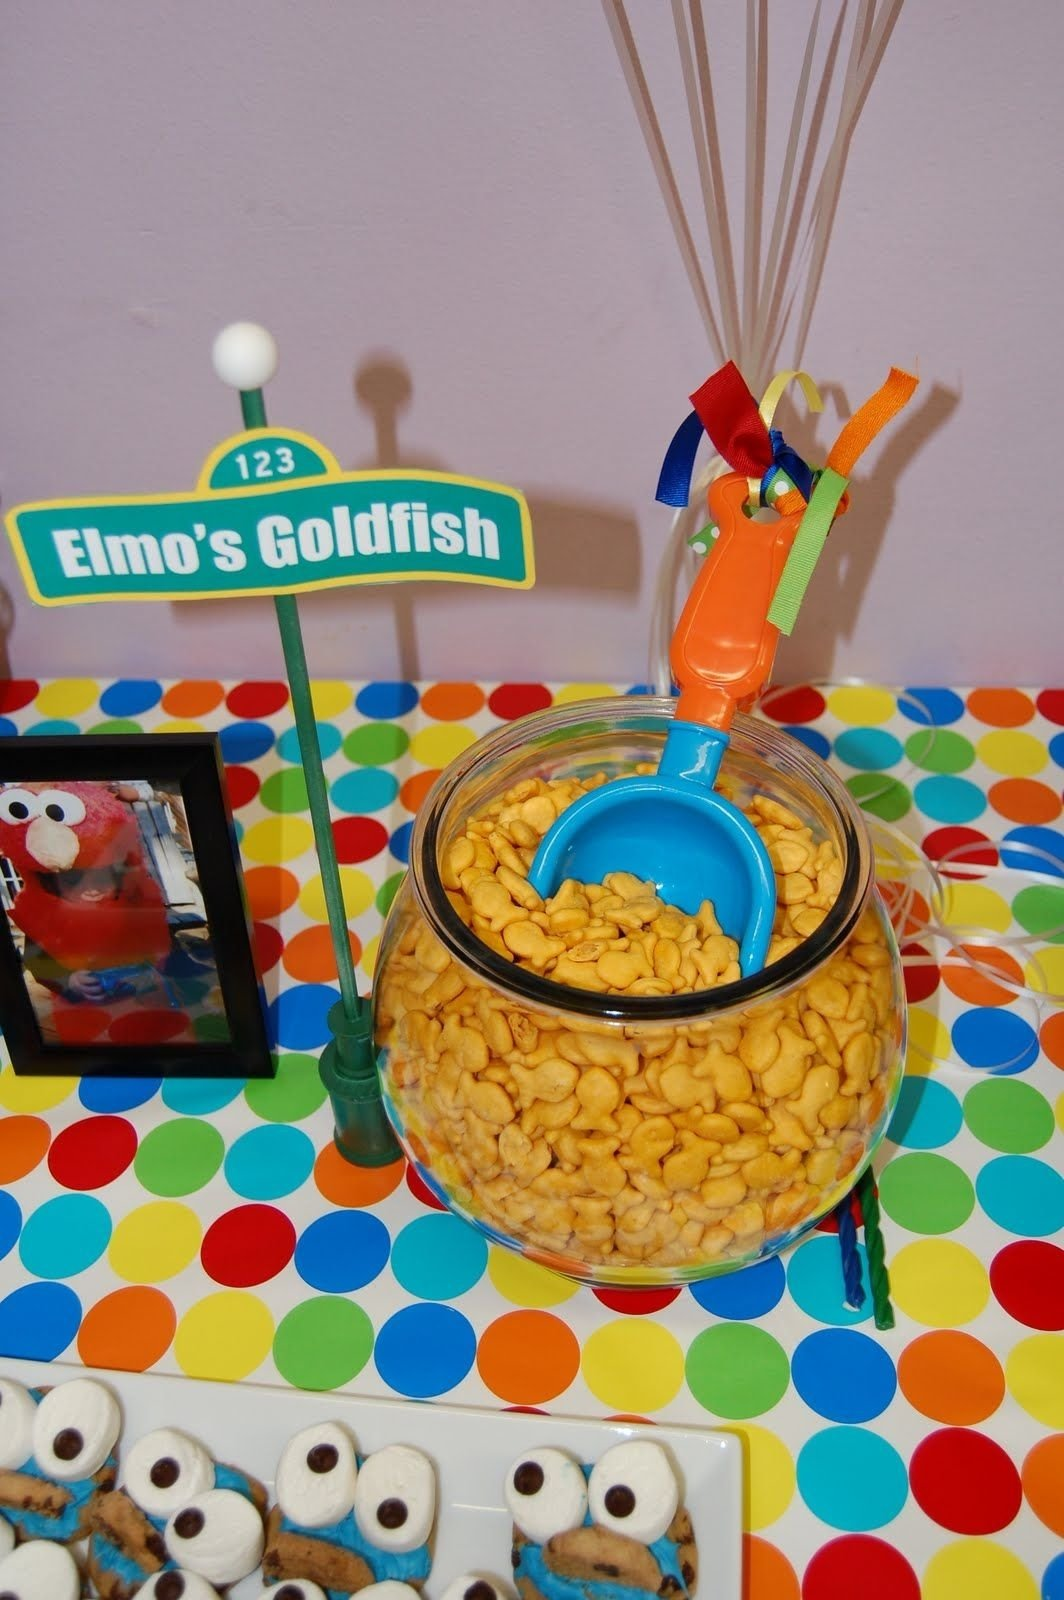 elmo's goldfishcute idea for a kid's party but with a clean fish